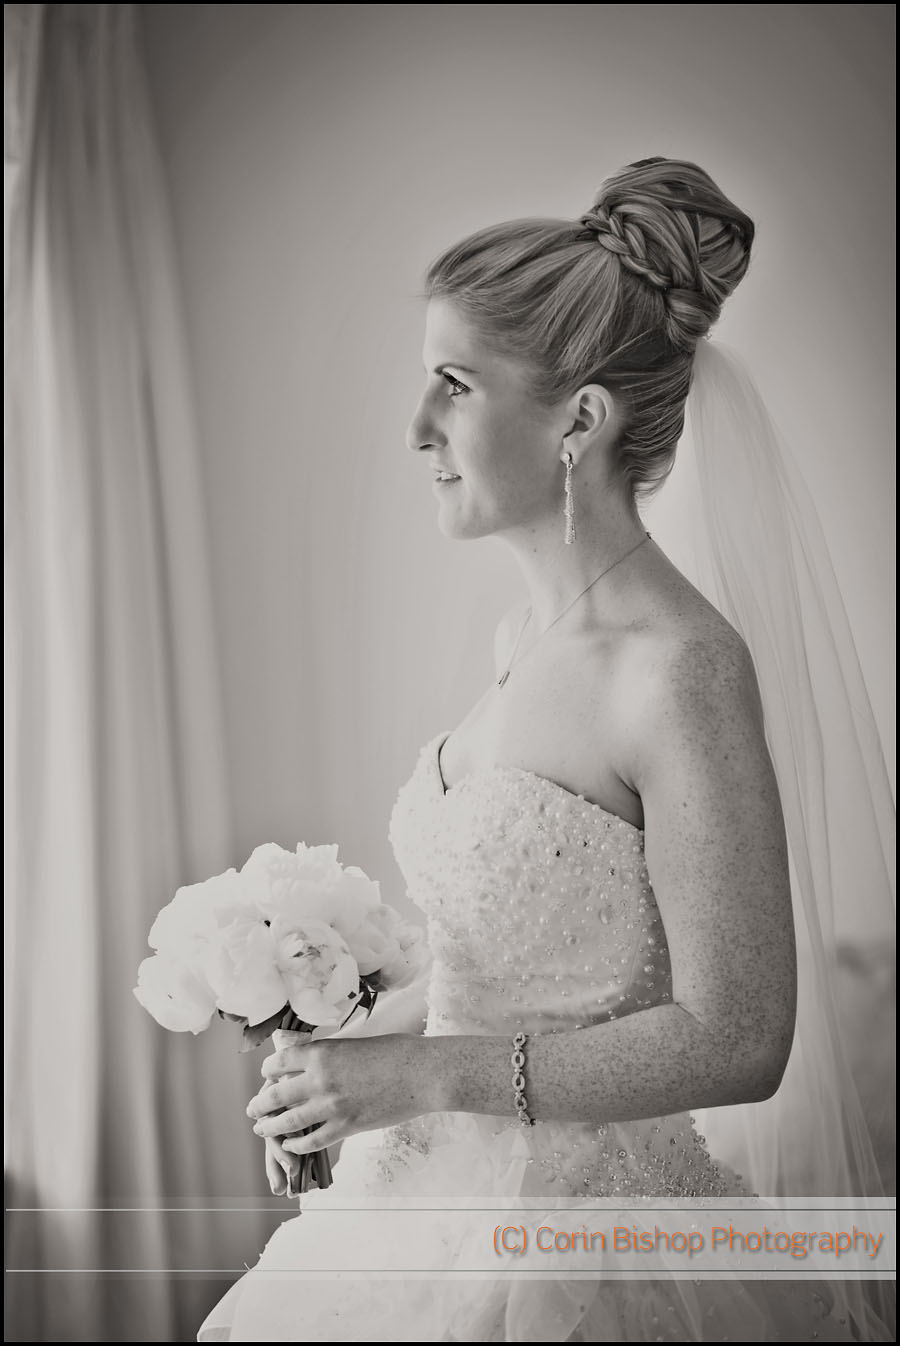 Another Portrait of the Bride